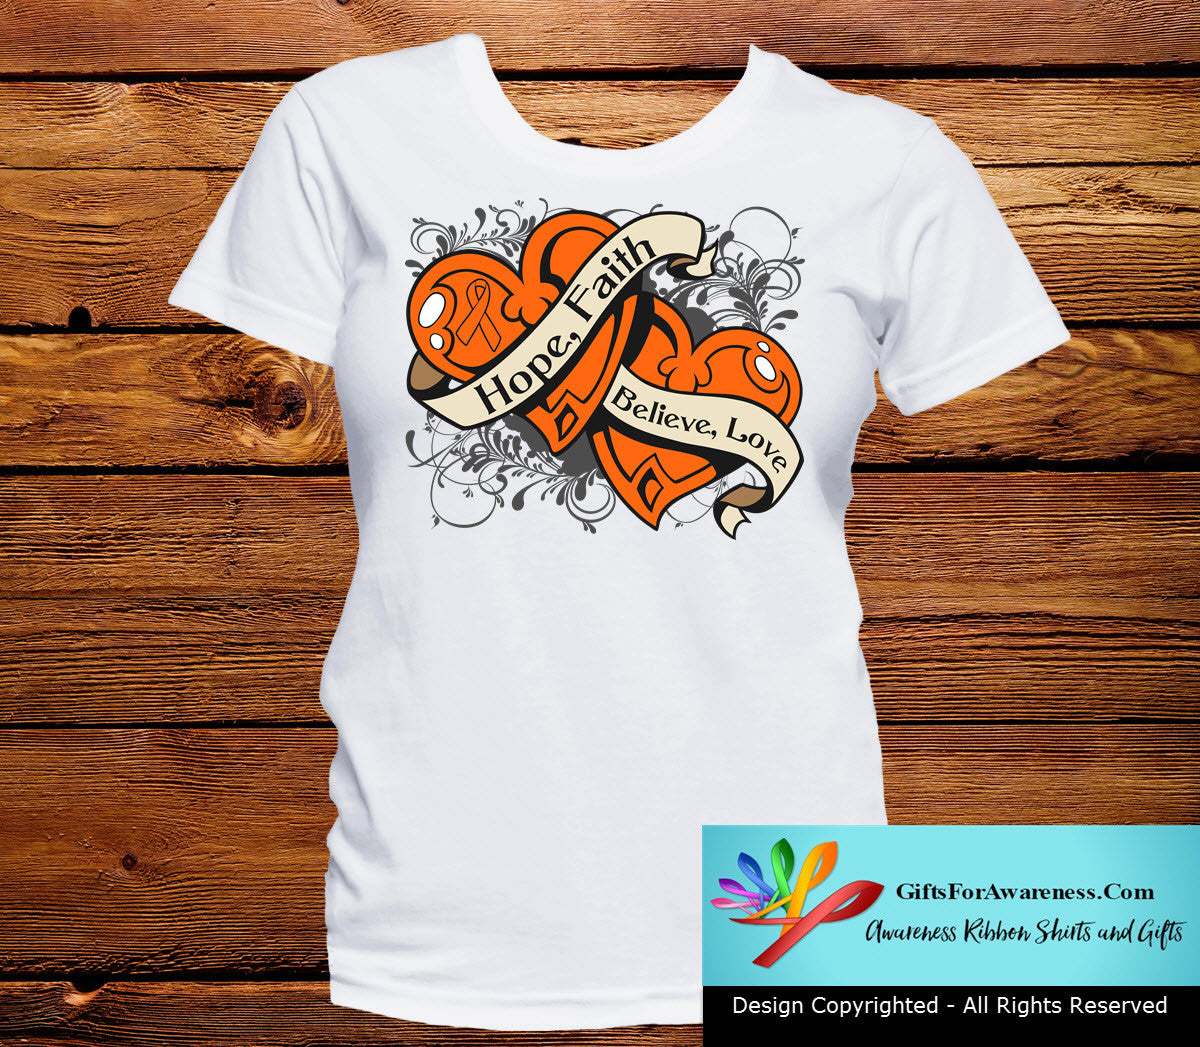 Leukemia Hope Believe Faith Love Shirts - GiftsForAwareness